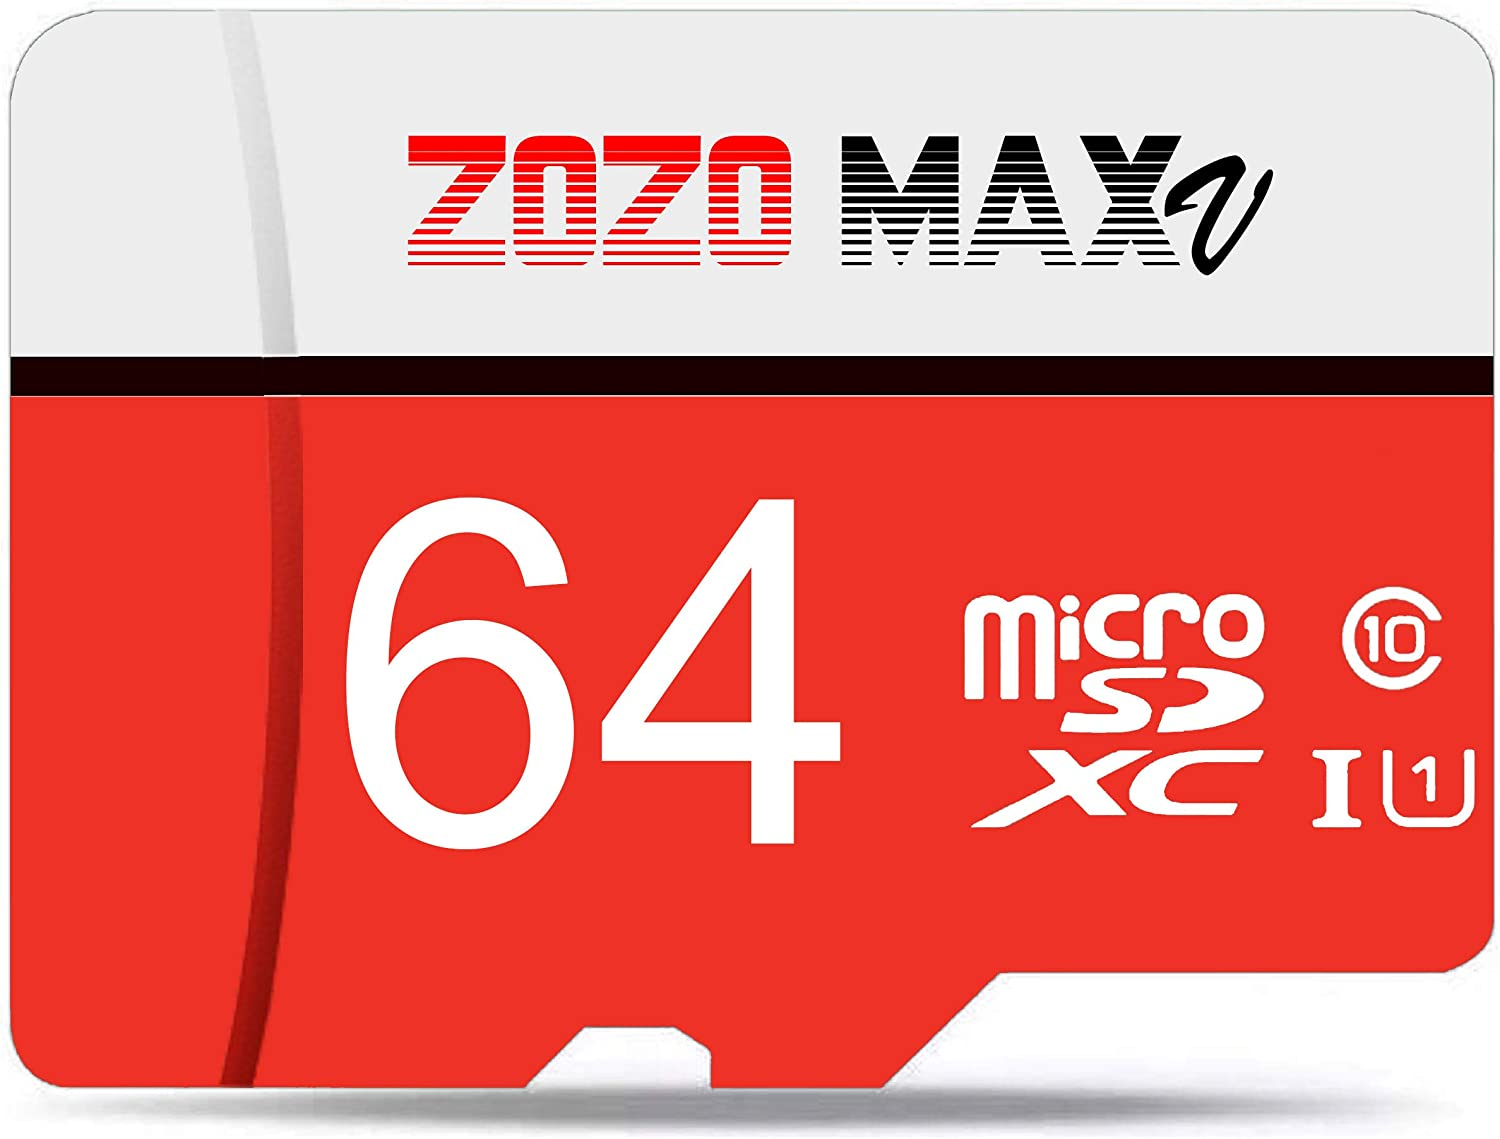 ZOZO MAXV Micro SD Card 64GB High Speed Class 10 Memory Card with Adapter Standard Packaging High Performance Choice for Camera, Cell Phone, Tablets, Smartphones, Laptops, Pictures, Videos,Store Data